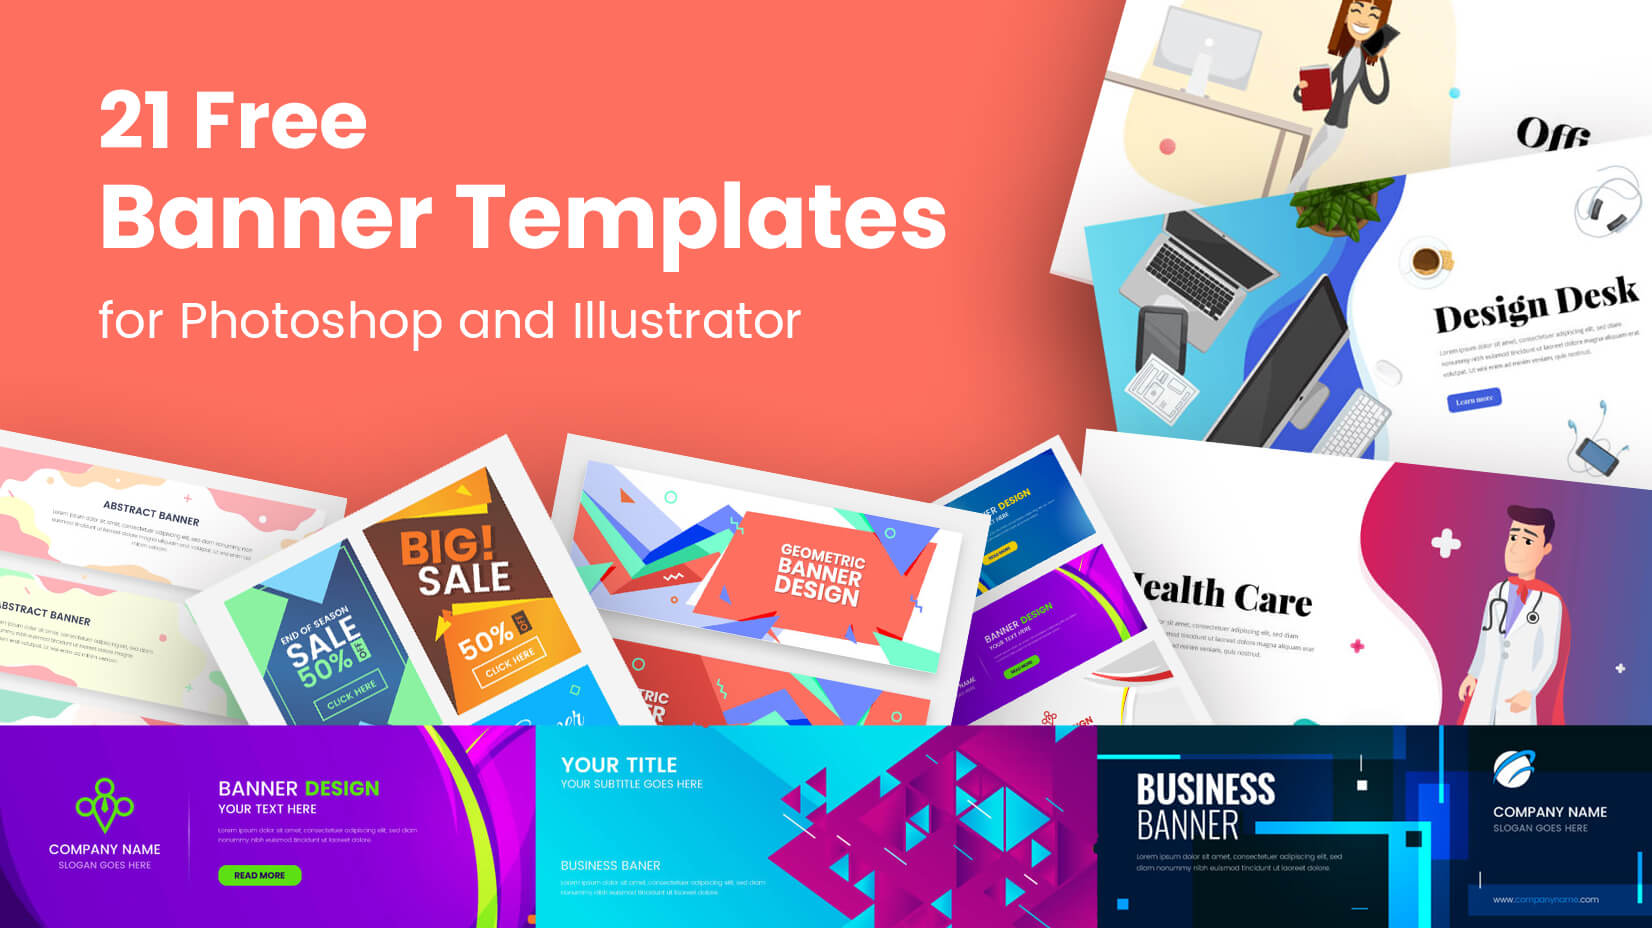 21 Free Banner Templates for Photoshop and Illustrator.